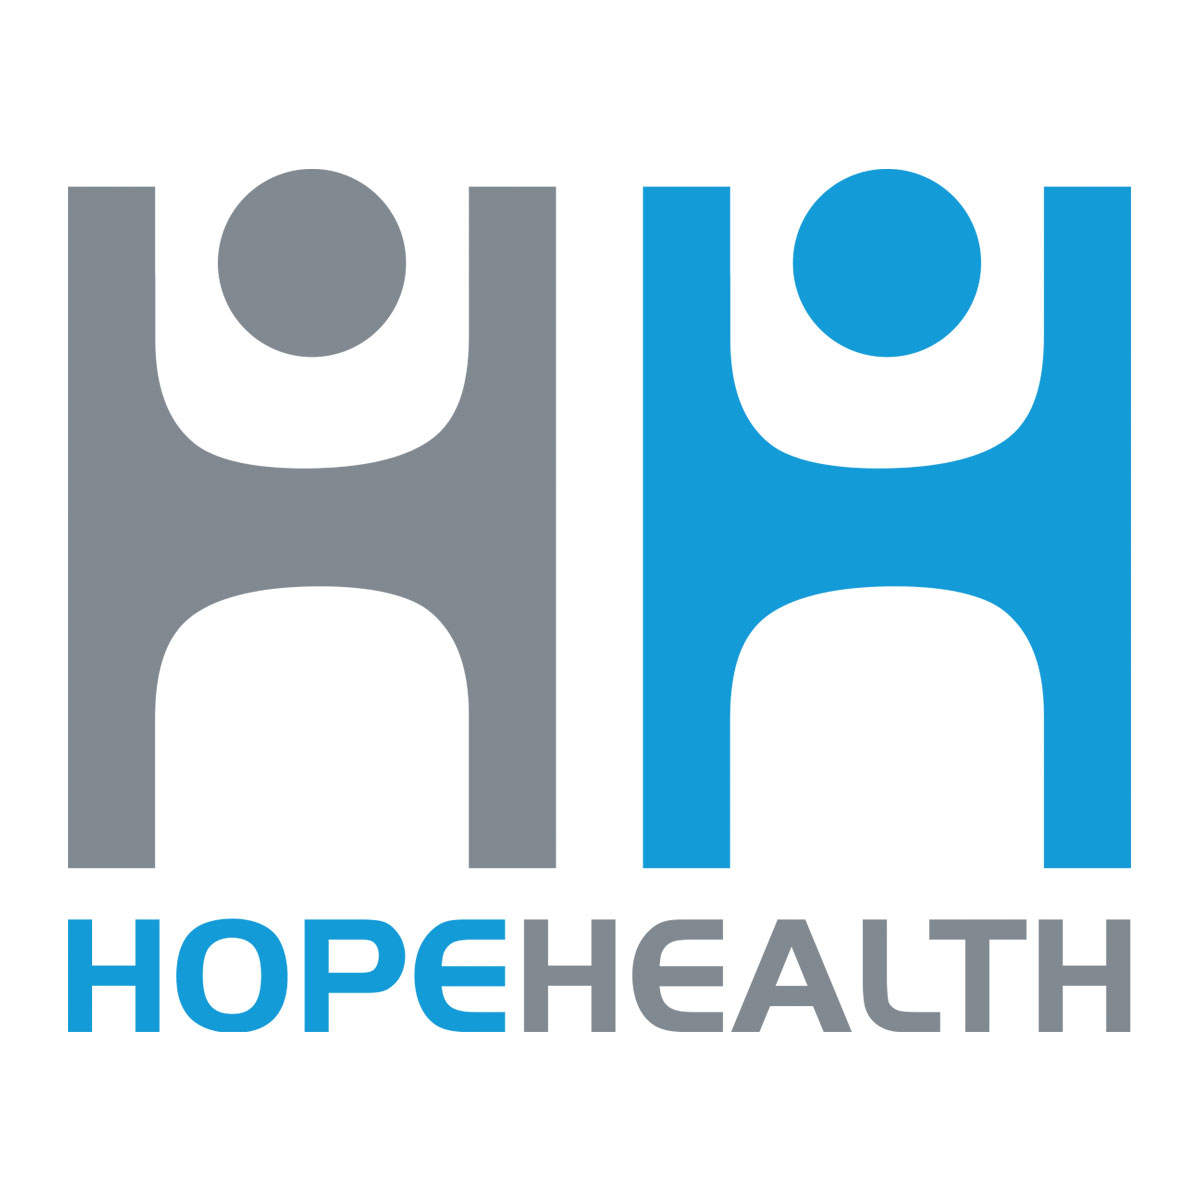 hope health logo-fb.jpg